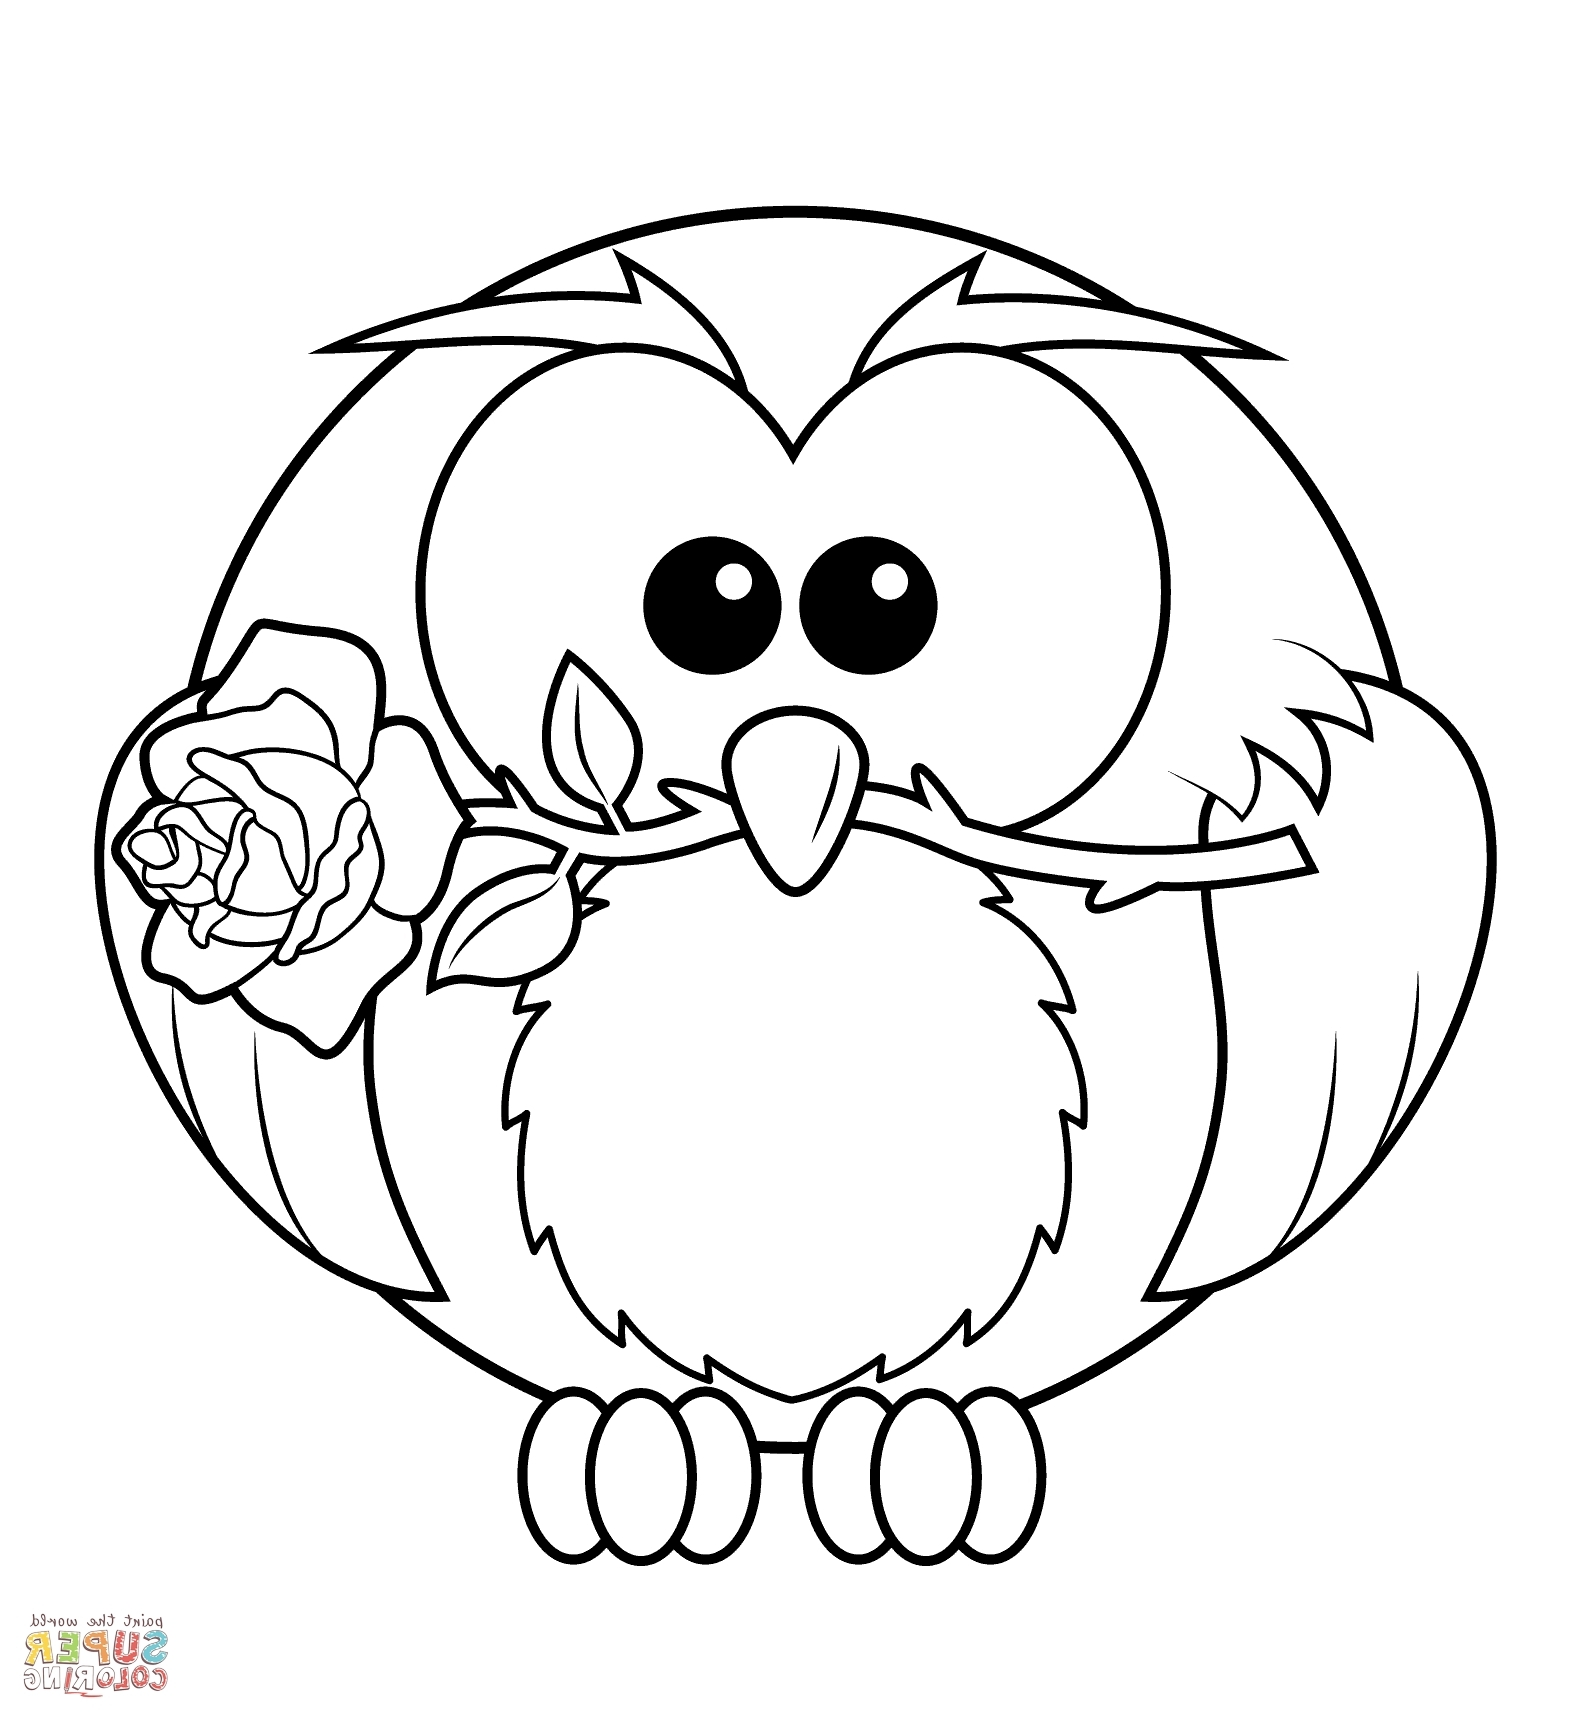 free owl coloring pages - owl face coloring page